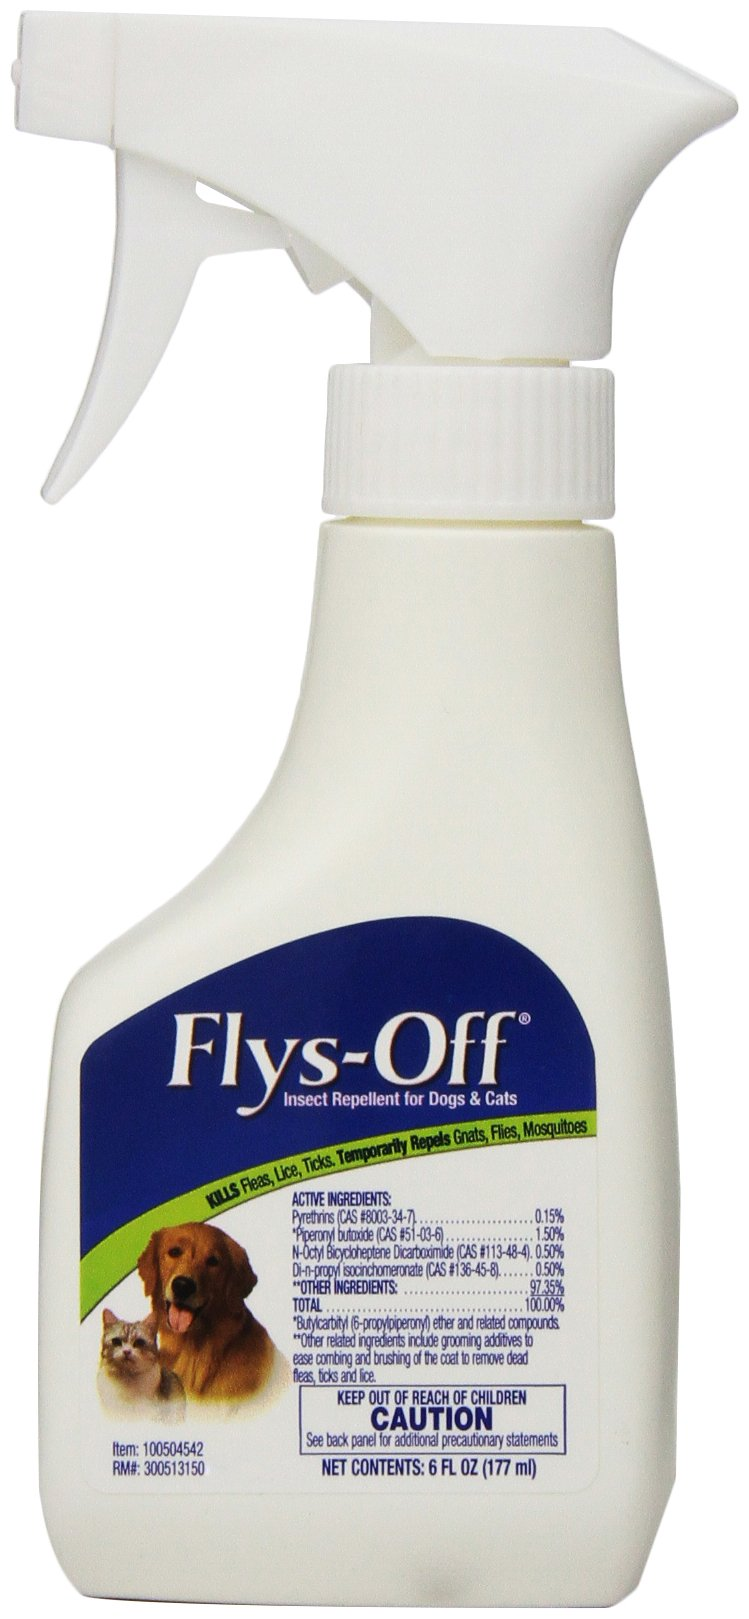 Flys-Off Insect Repellent for Dogs & Cats, 6 fl oz by Farnam